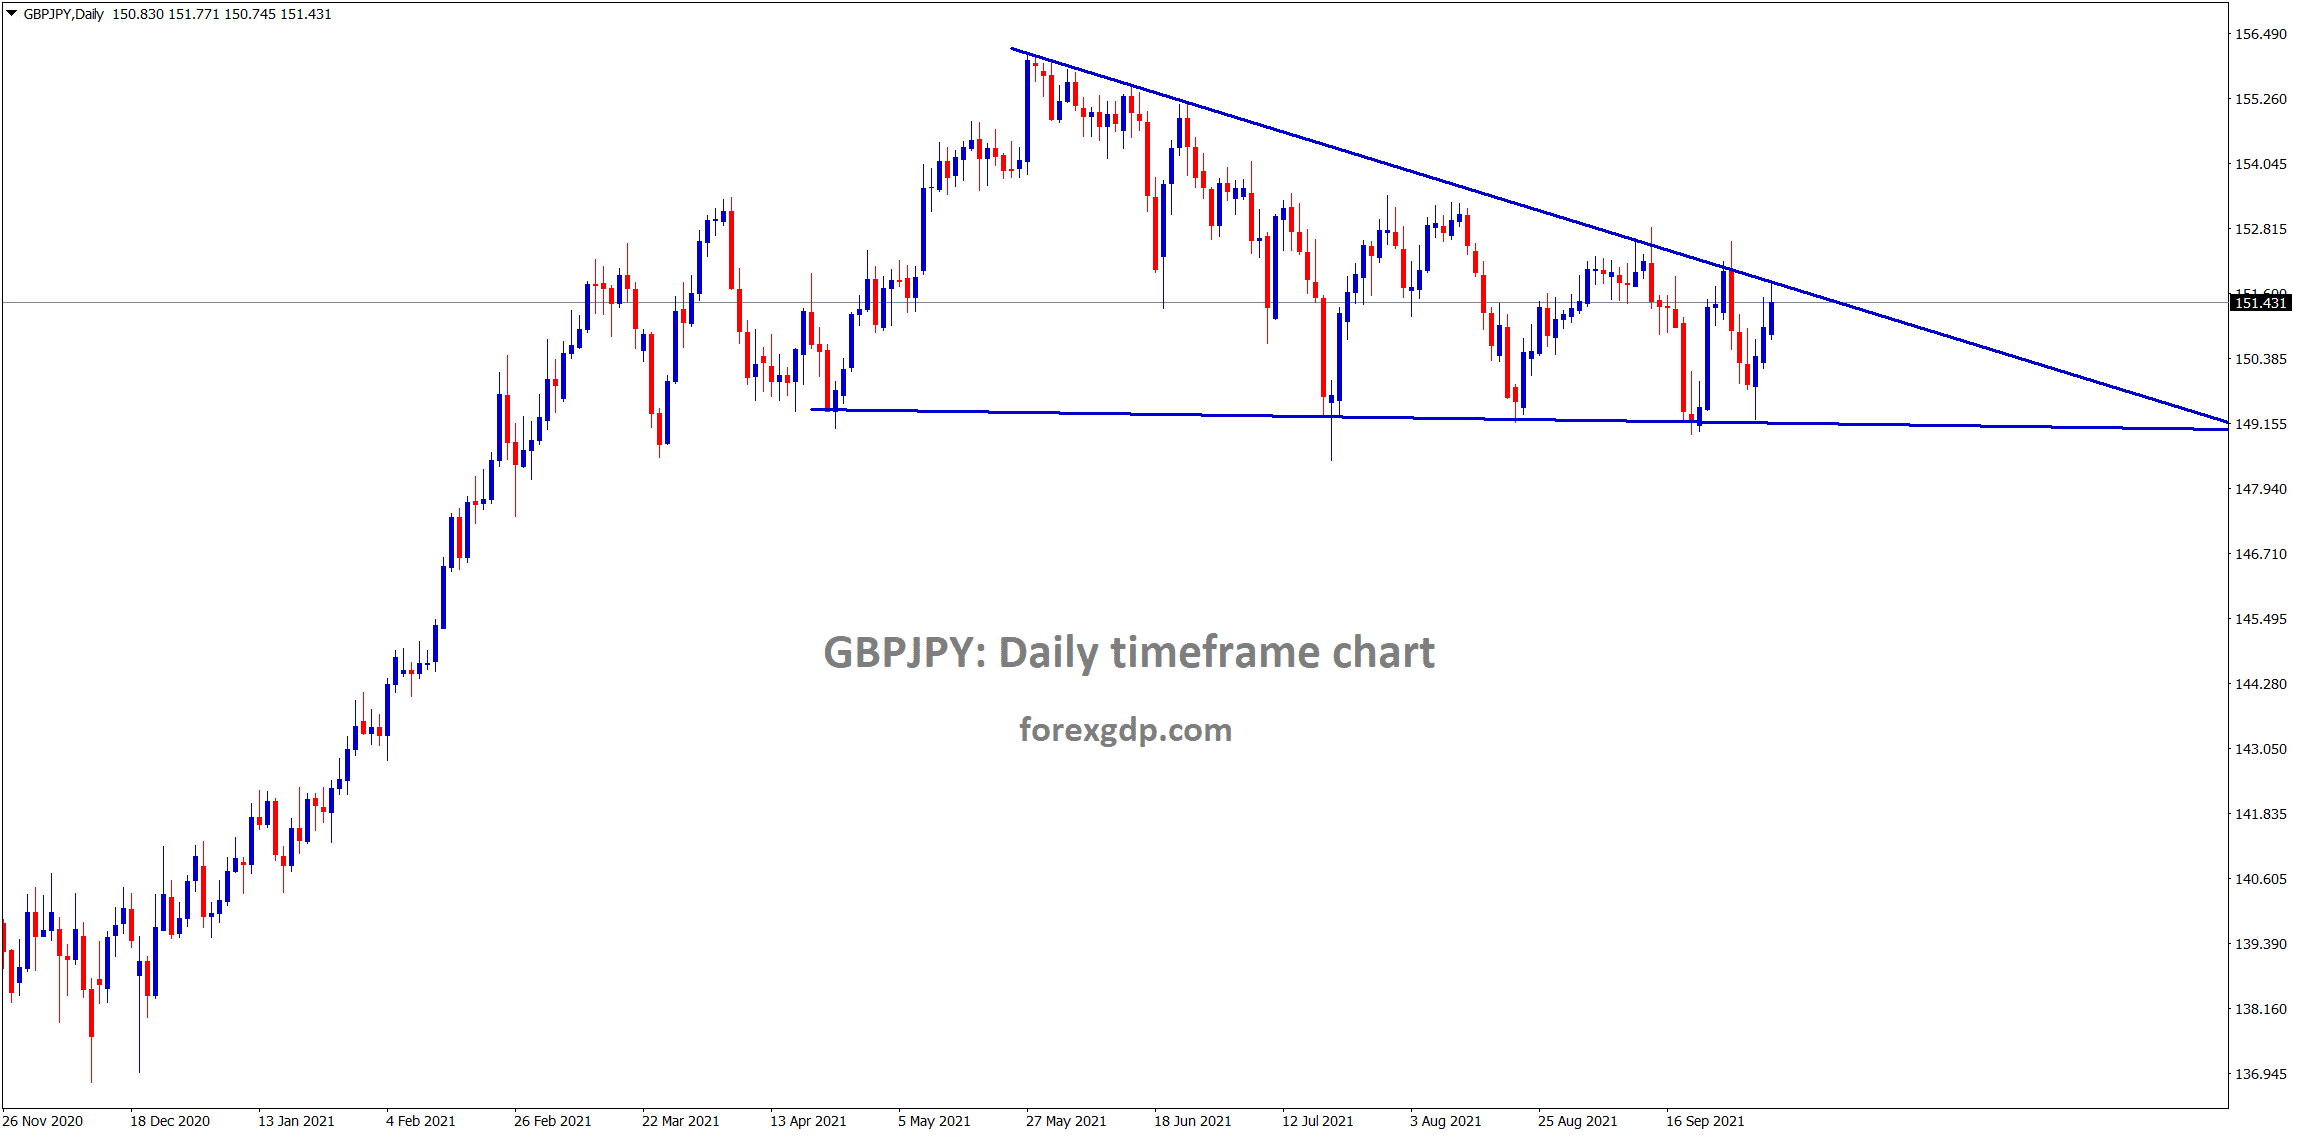 GBPJPY is trying to break the descending triangle wait for the strong breakout confirmation